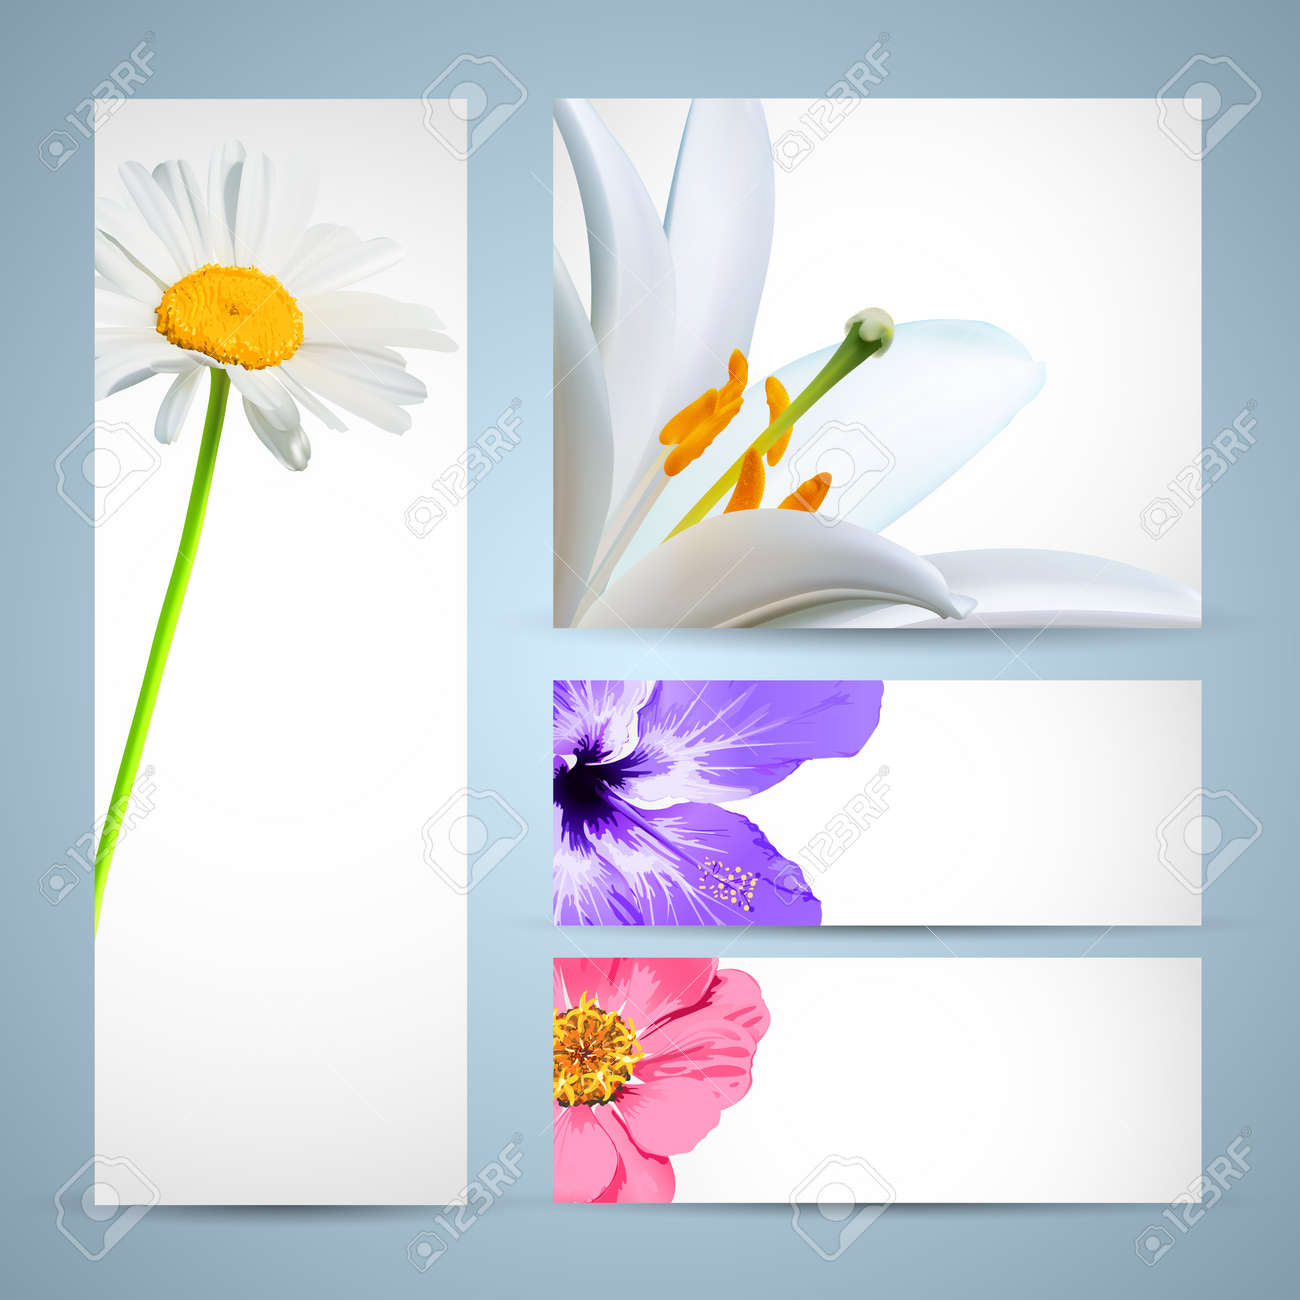 flower brochure template background design royalty free cliparts